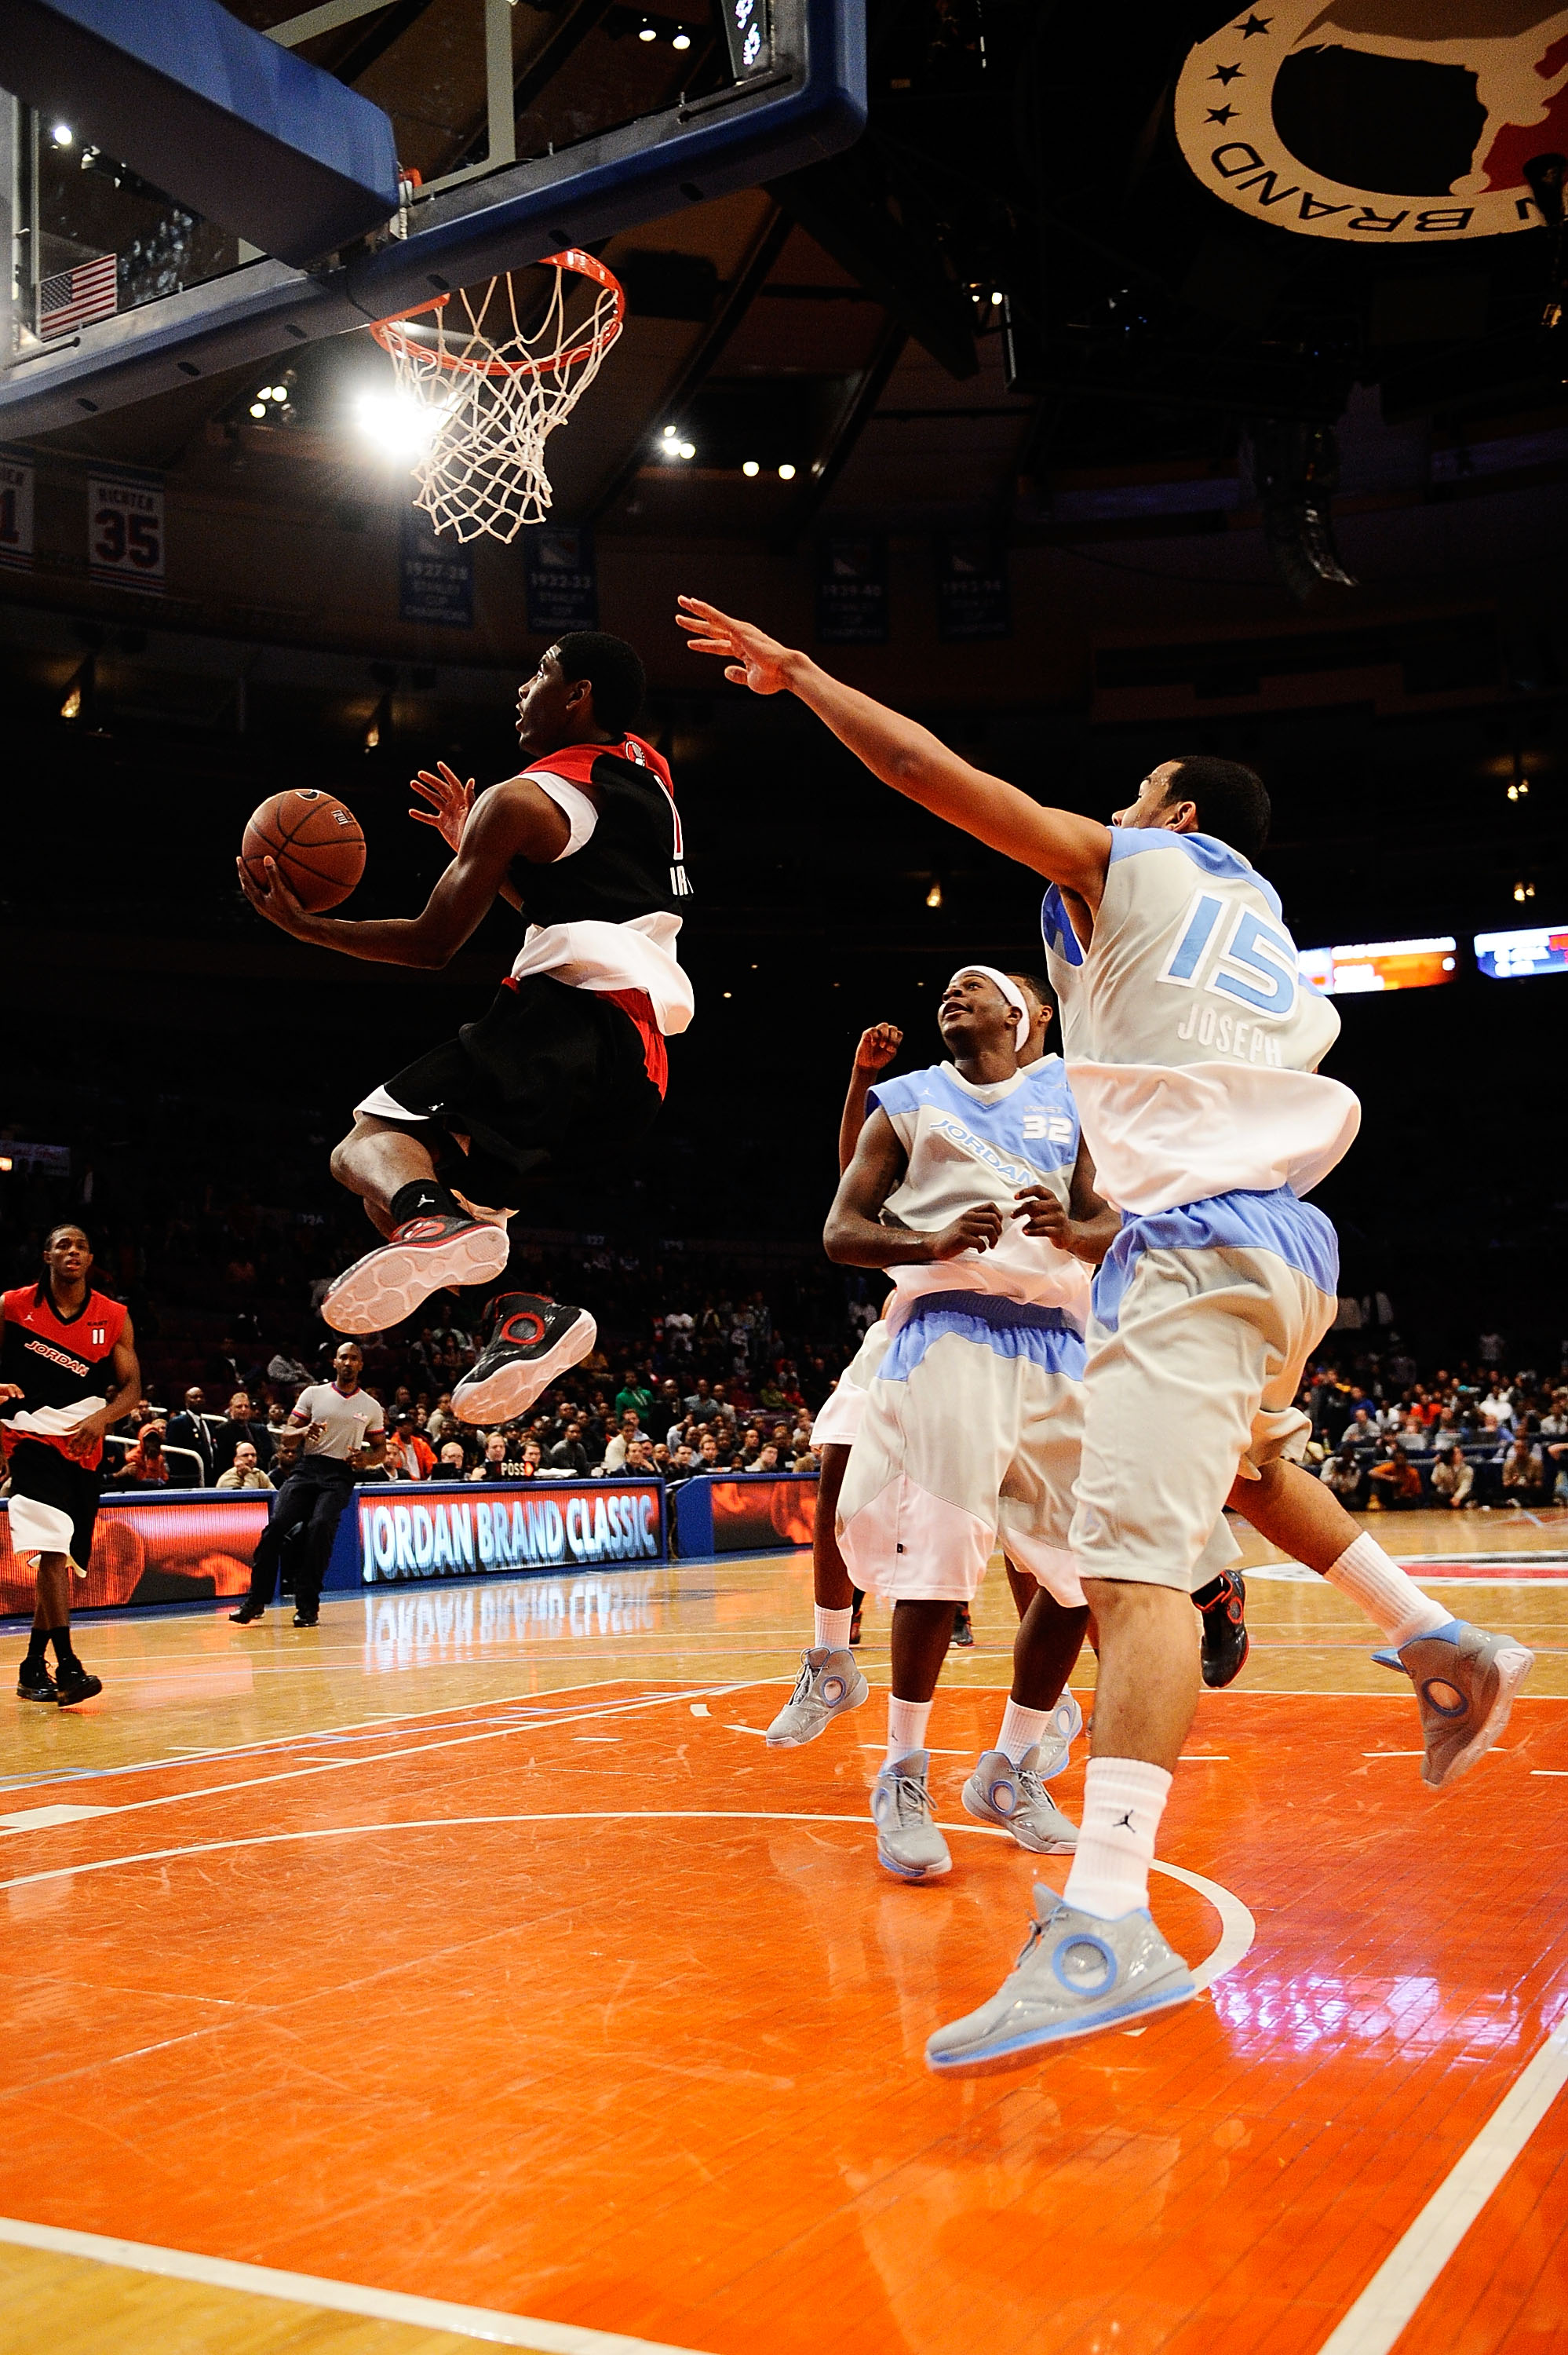 NEW YORK - APRIL 17:  Kyrie Irving #1 of East Team goes for a shot during the National Game at the 2010 Jordan Brand classic at Madison Square Garden on April 17, 2010 in New York City.  (Photo by Jeff Zelevansky/Getty Images for Jordan Brand Classic)